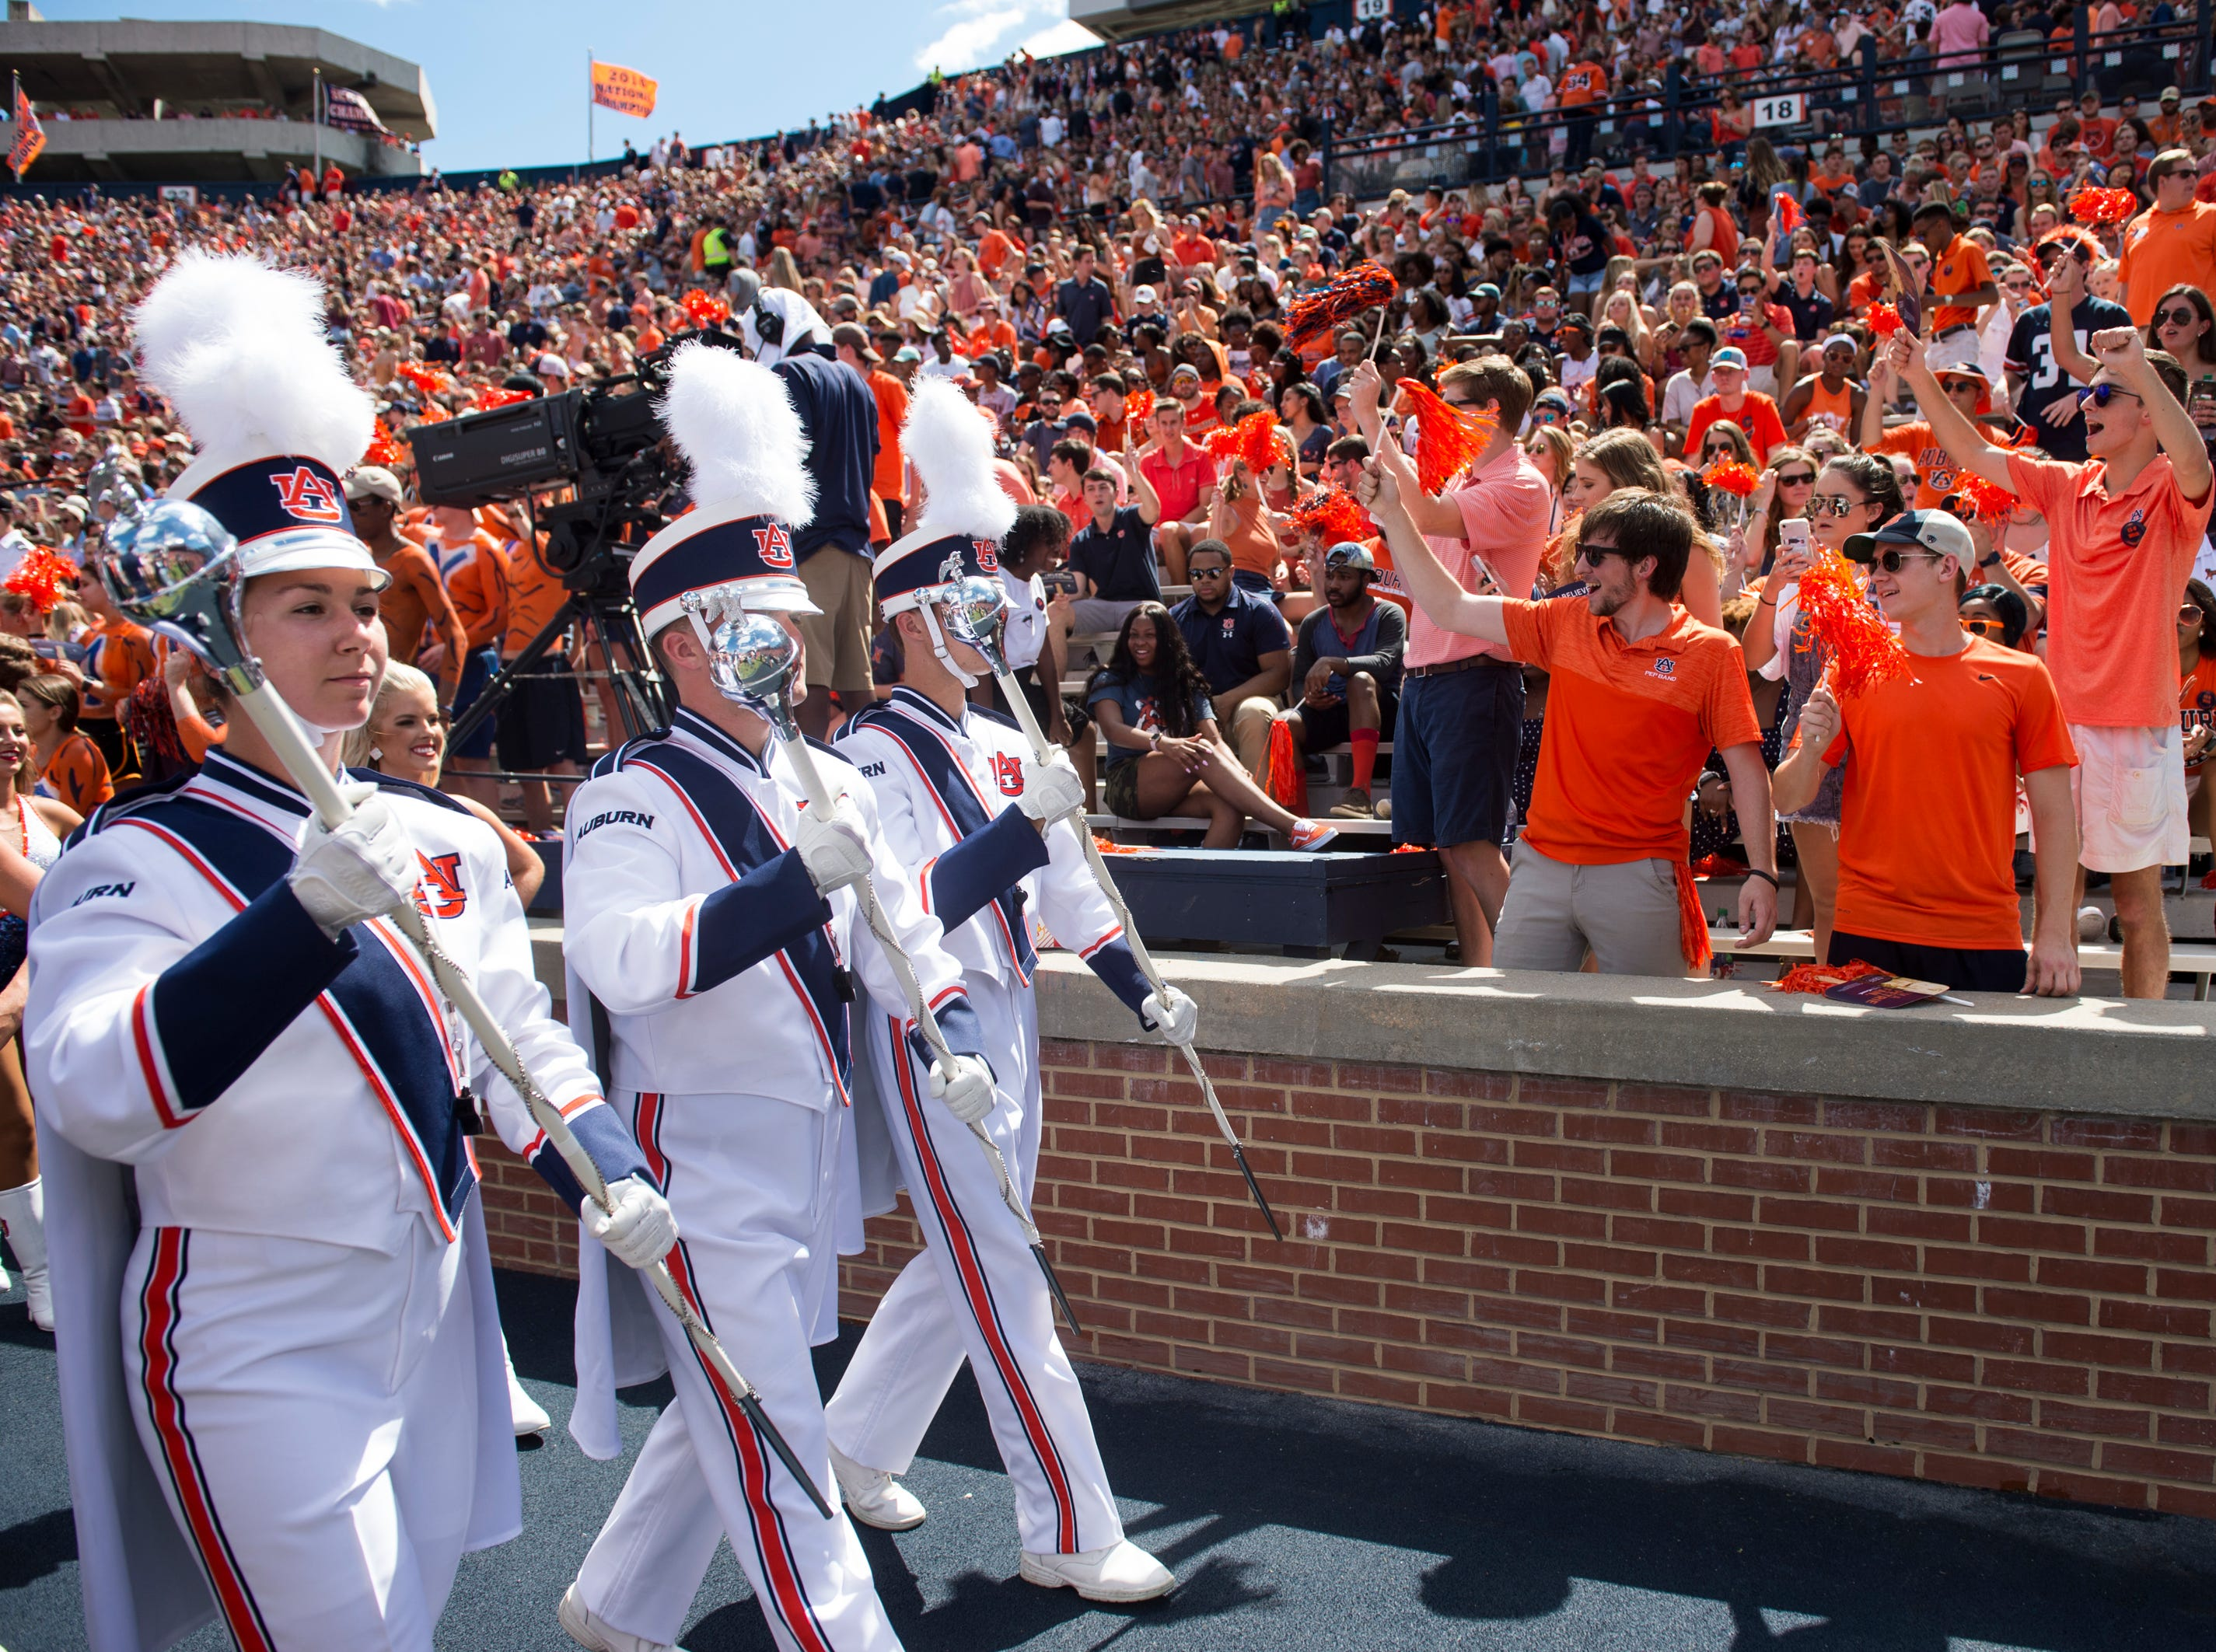 The Auburn Marching Band takes the field before Auburn takes on LSU at Jordan-Hare Stadium in Auburn, Ala., on Saturday, Sept. 15, 2018.